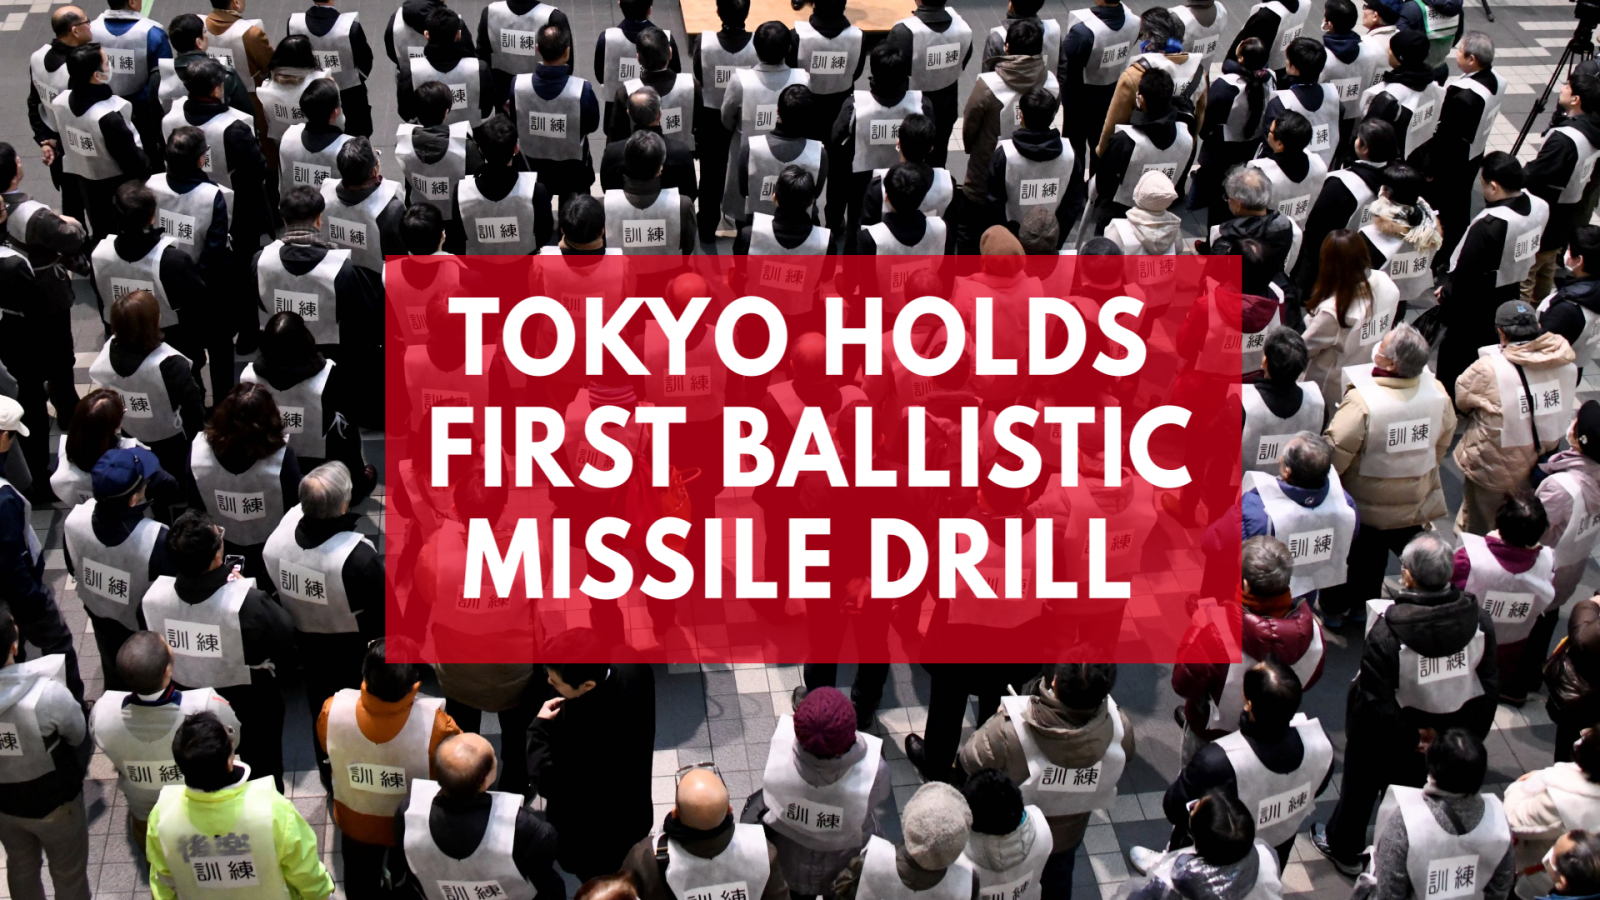 tokyo-prepares-for-nuclear-war-with-drill-amid-tensions-with-north-korea